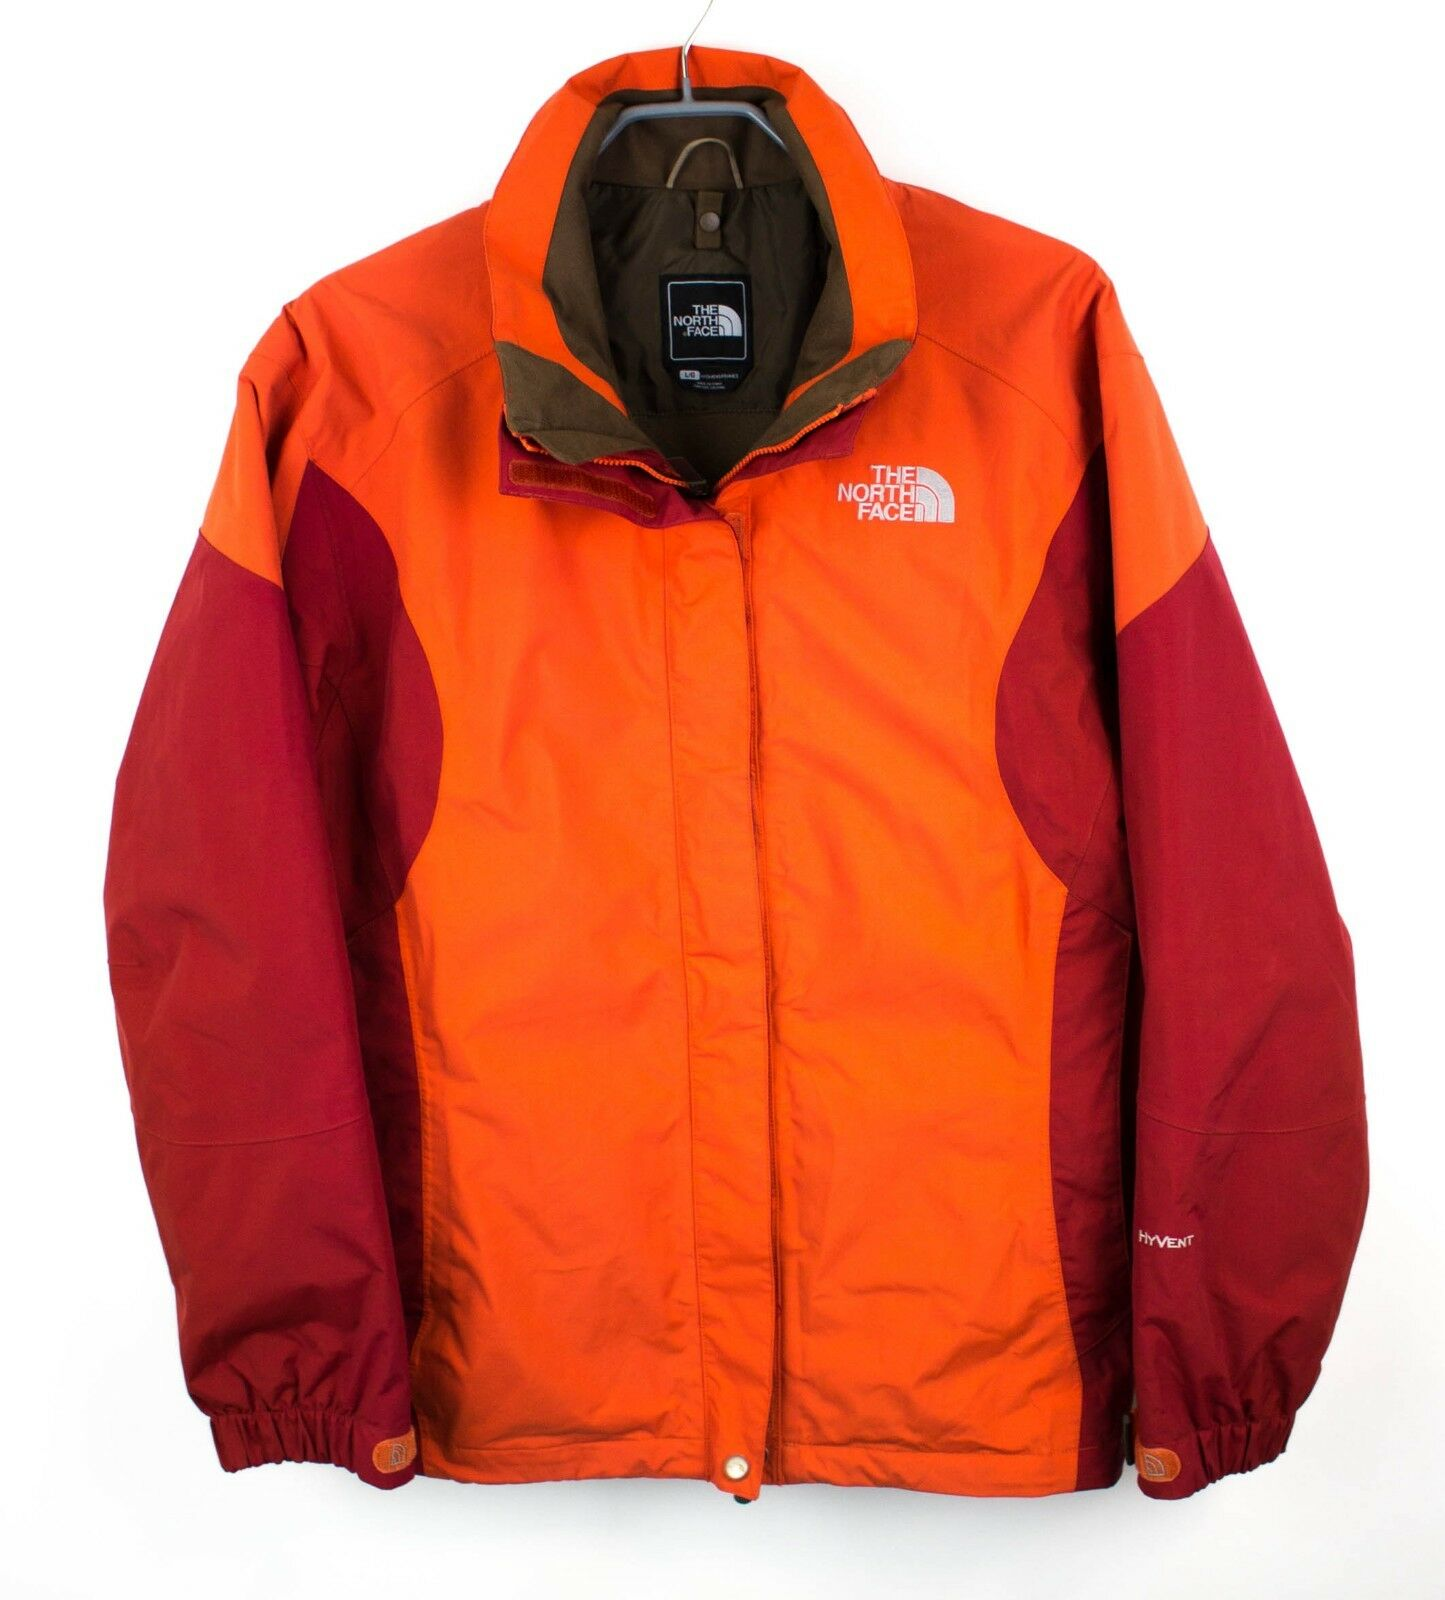 The North Face women Giacca Hyvent Traspirante Cappotto Impermeabile TAGLIA L